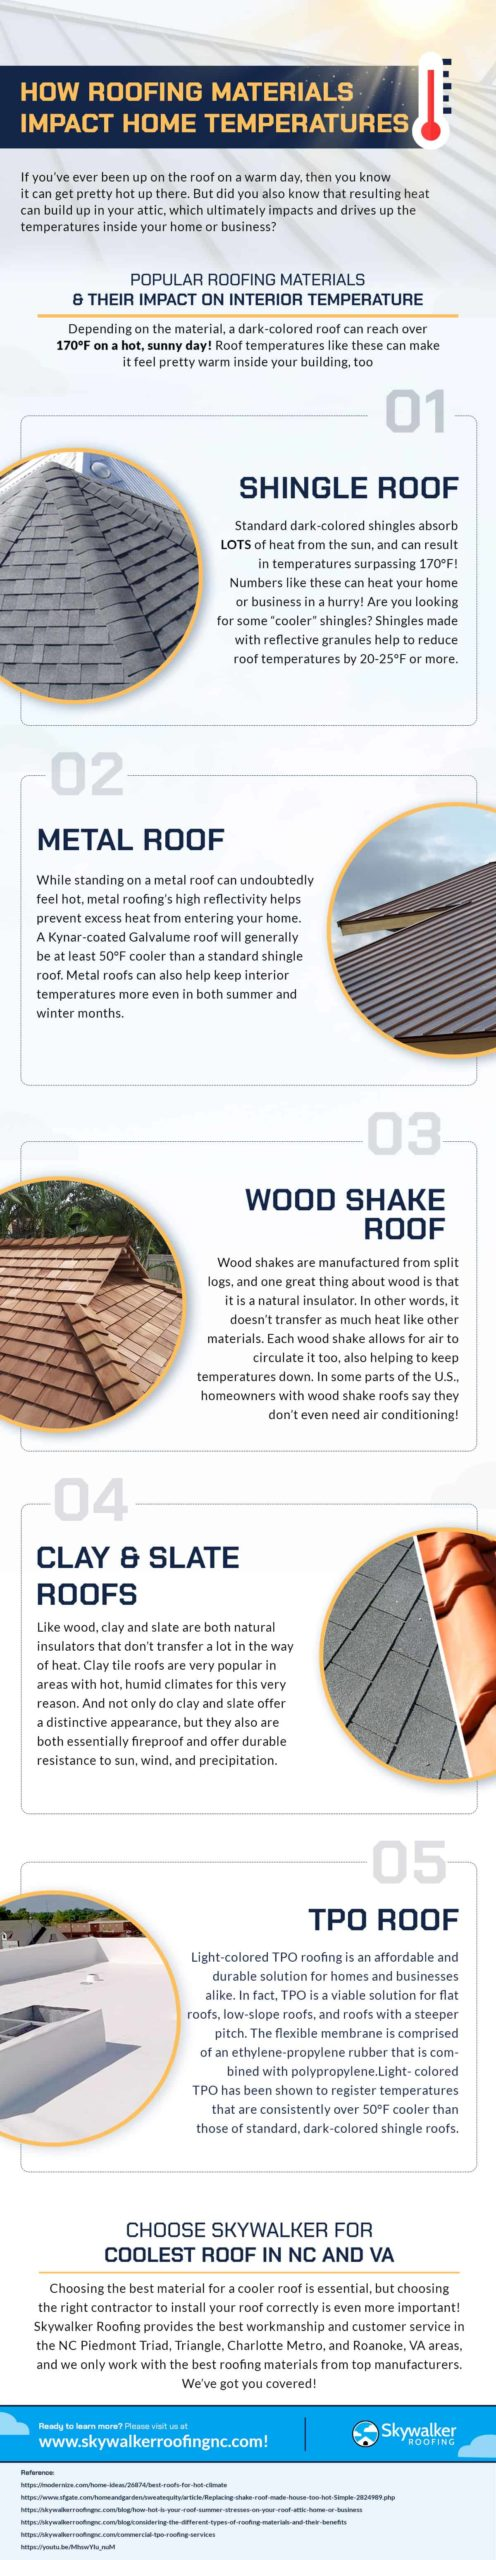 How Different Roofing Materials Impact Home Temperatures